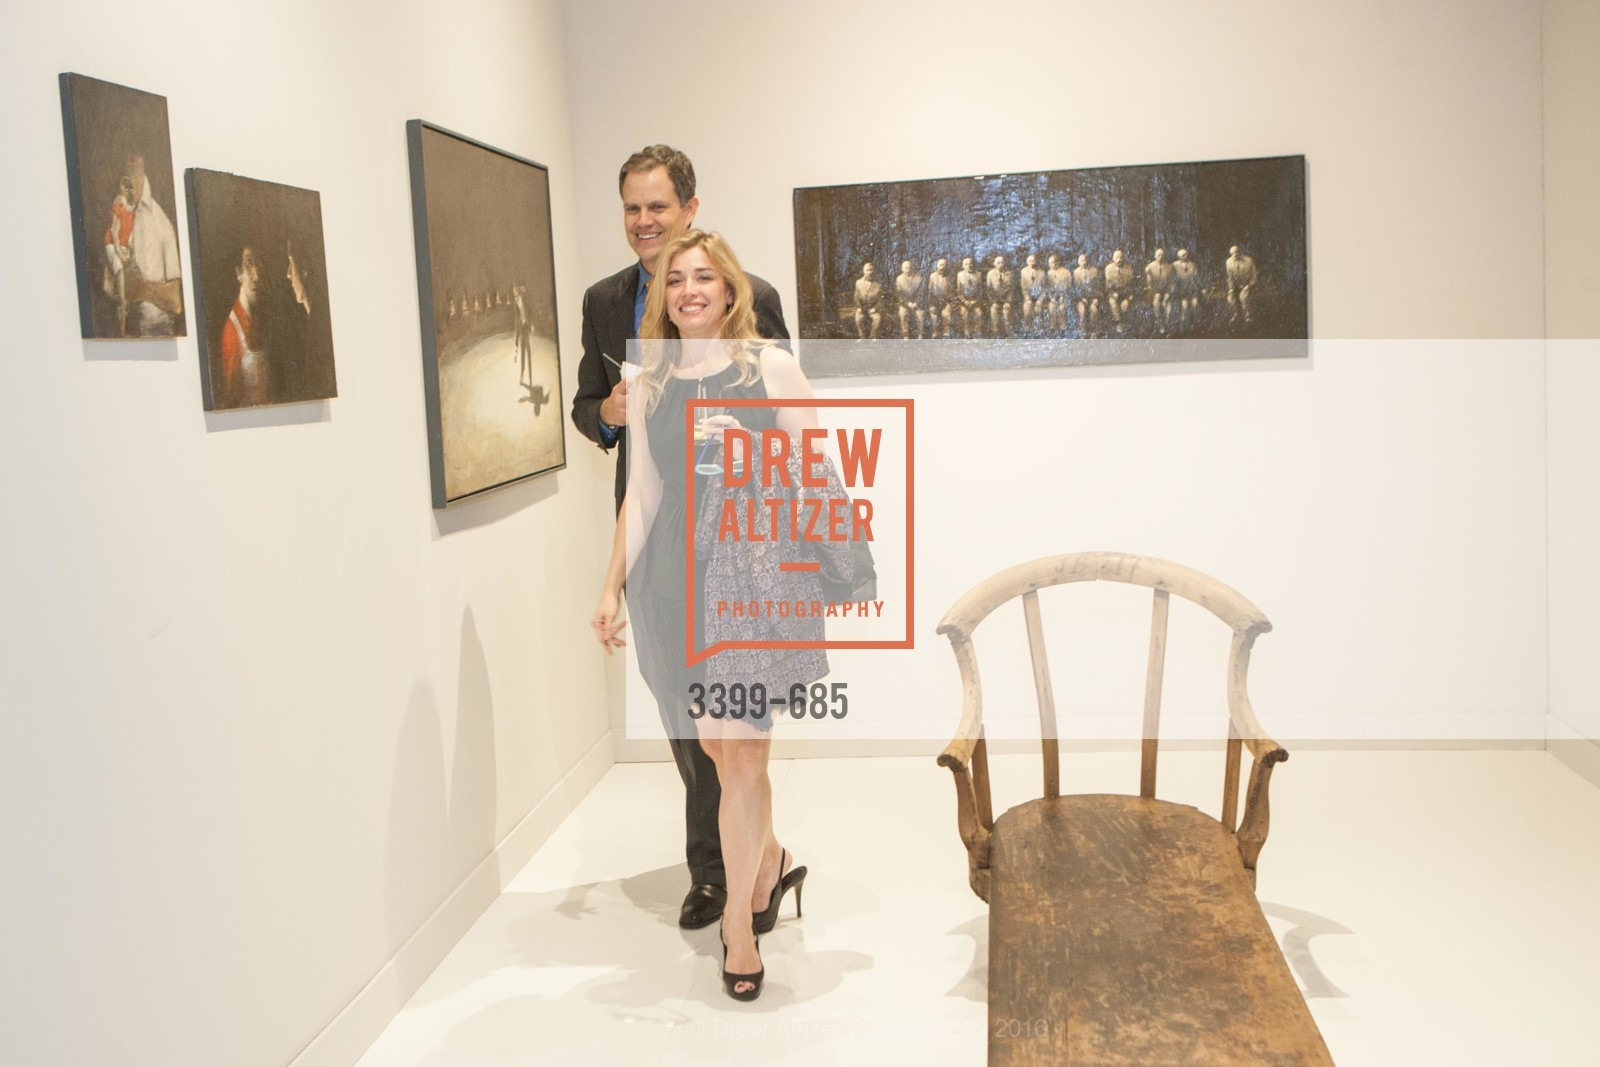 Extras, FOG Design+Art Preview Gala, January 13th, 2016, Photo,Drew Altizer, Drew Altizer Photography, full-service event agency, private events, San Francisco photographer, photographer California